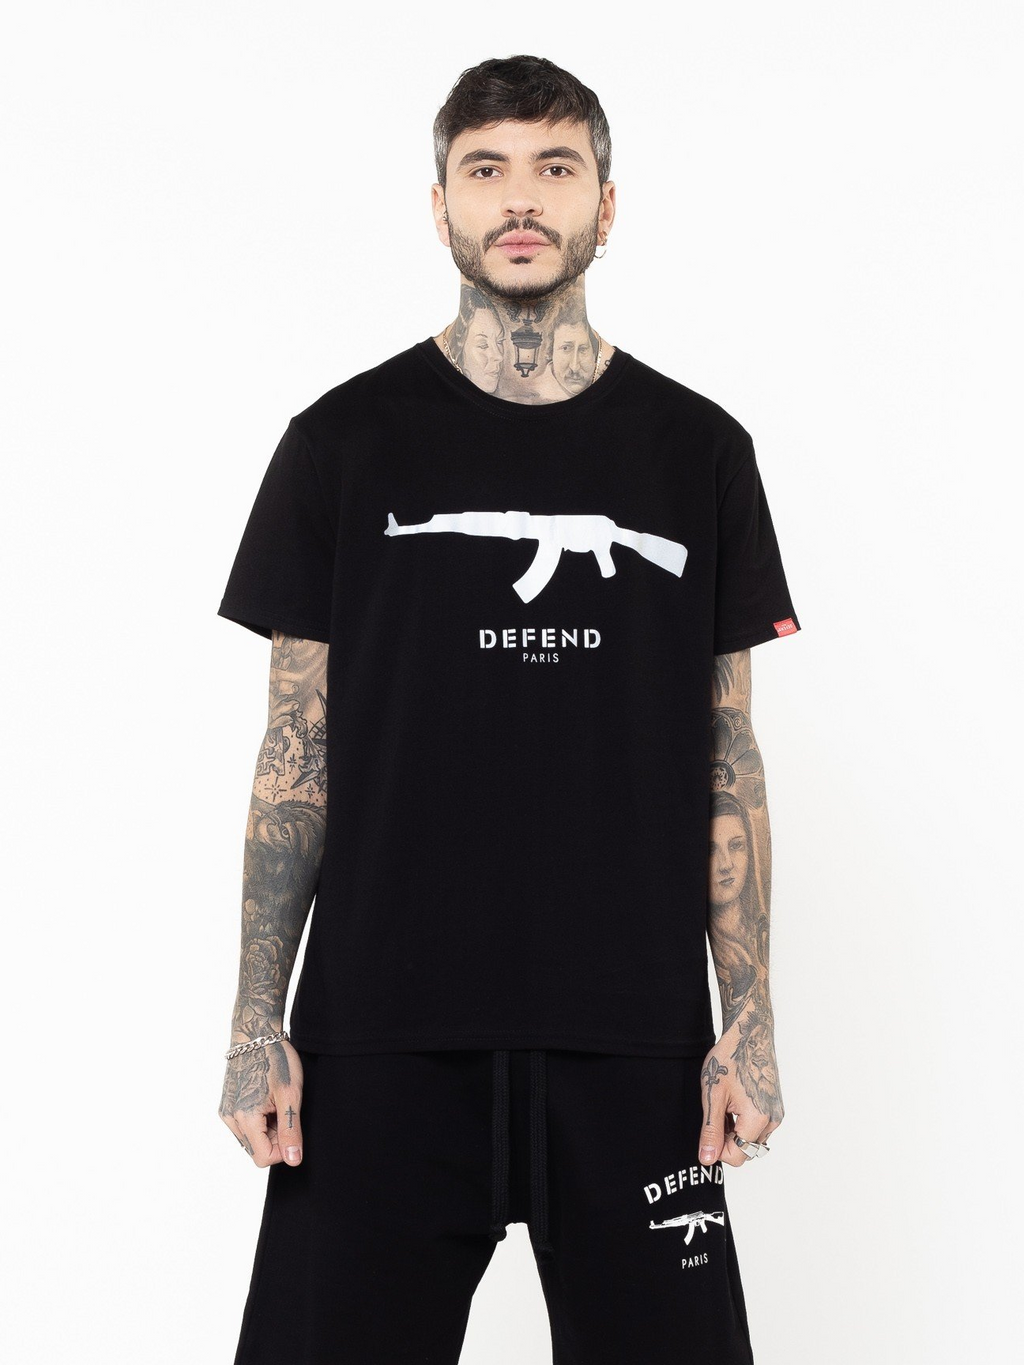 Defend Paris Cold Tee - This Is For Him